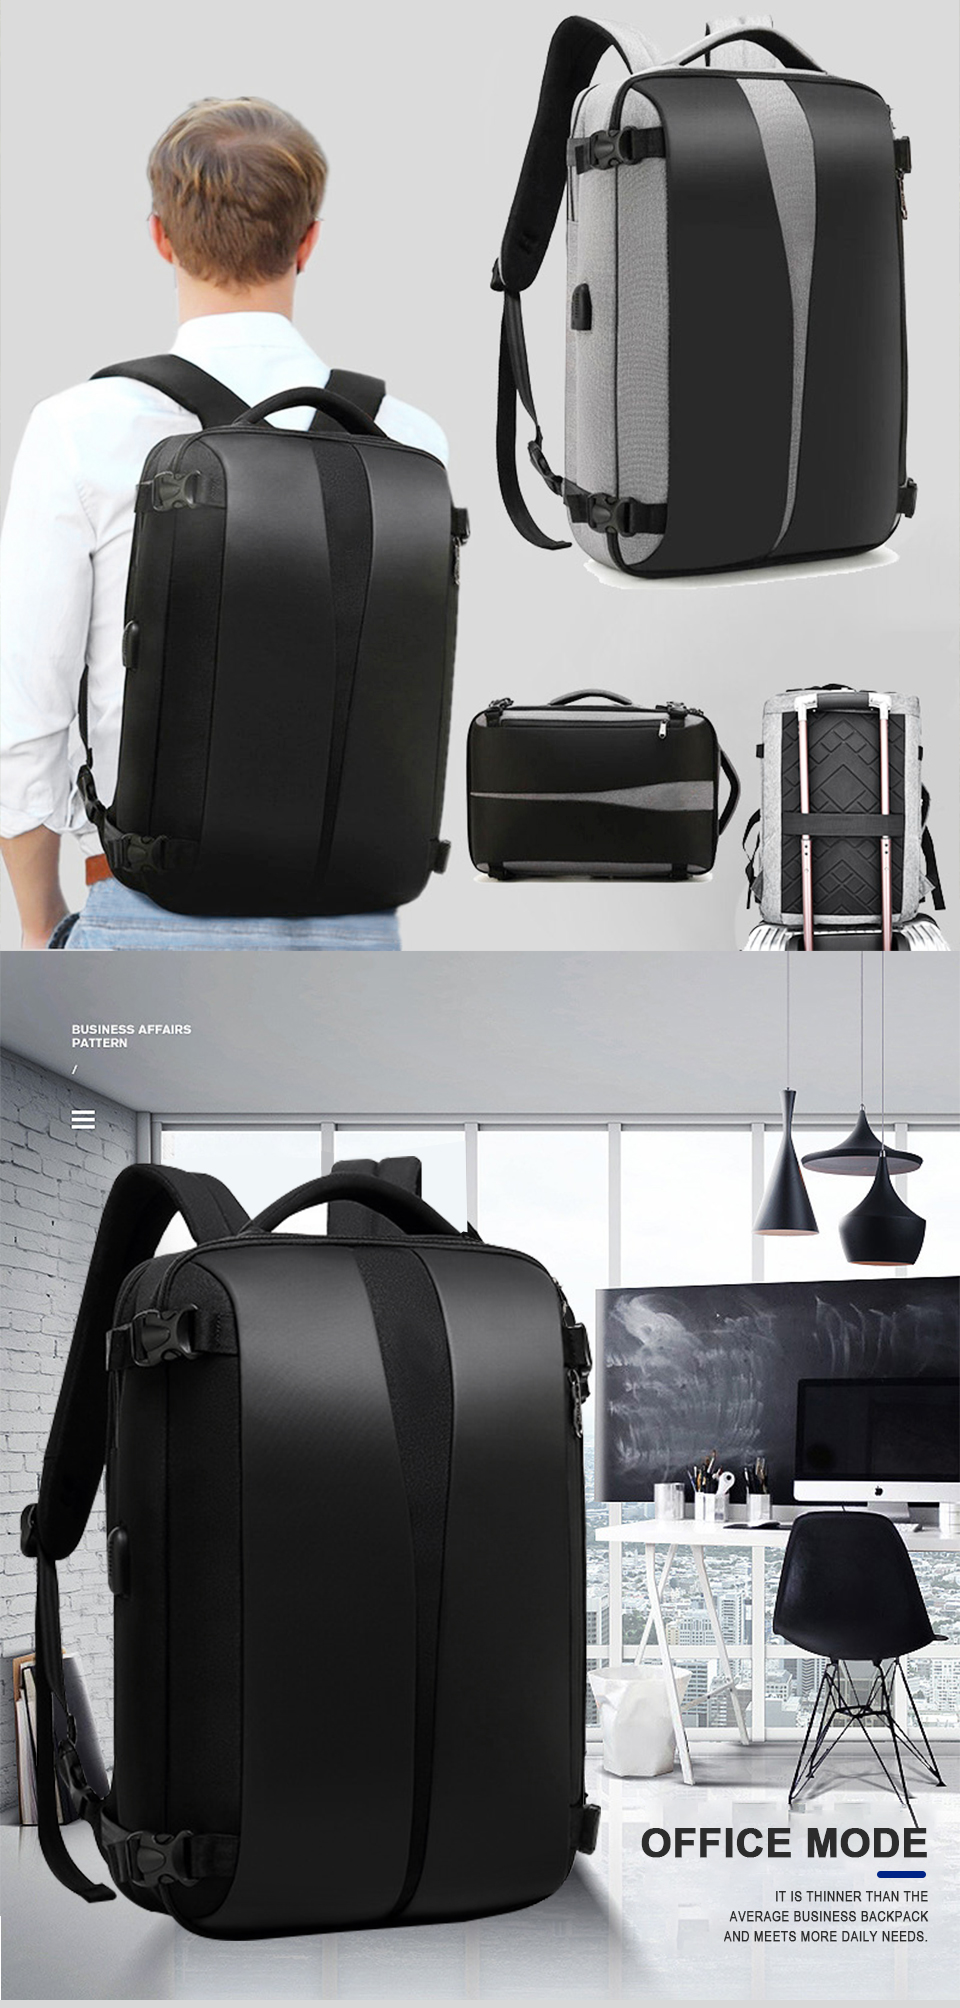 Men Backpack Anti Theft Travel Bagpack Laptop 15.6 Inch Notebook Waterproof Bags USB Charging Male Business Fashion Unisex Bag (2)